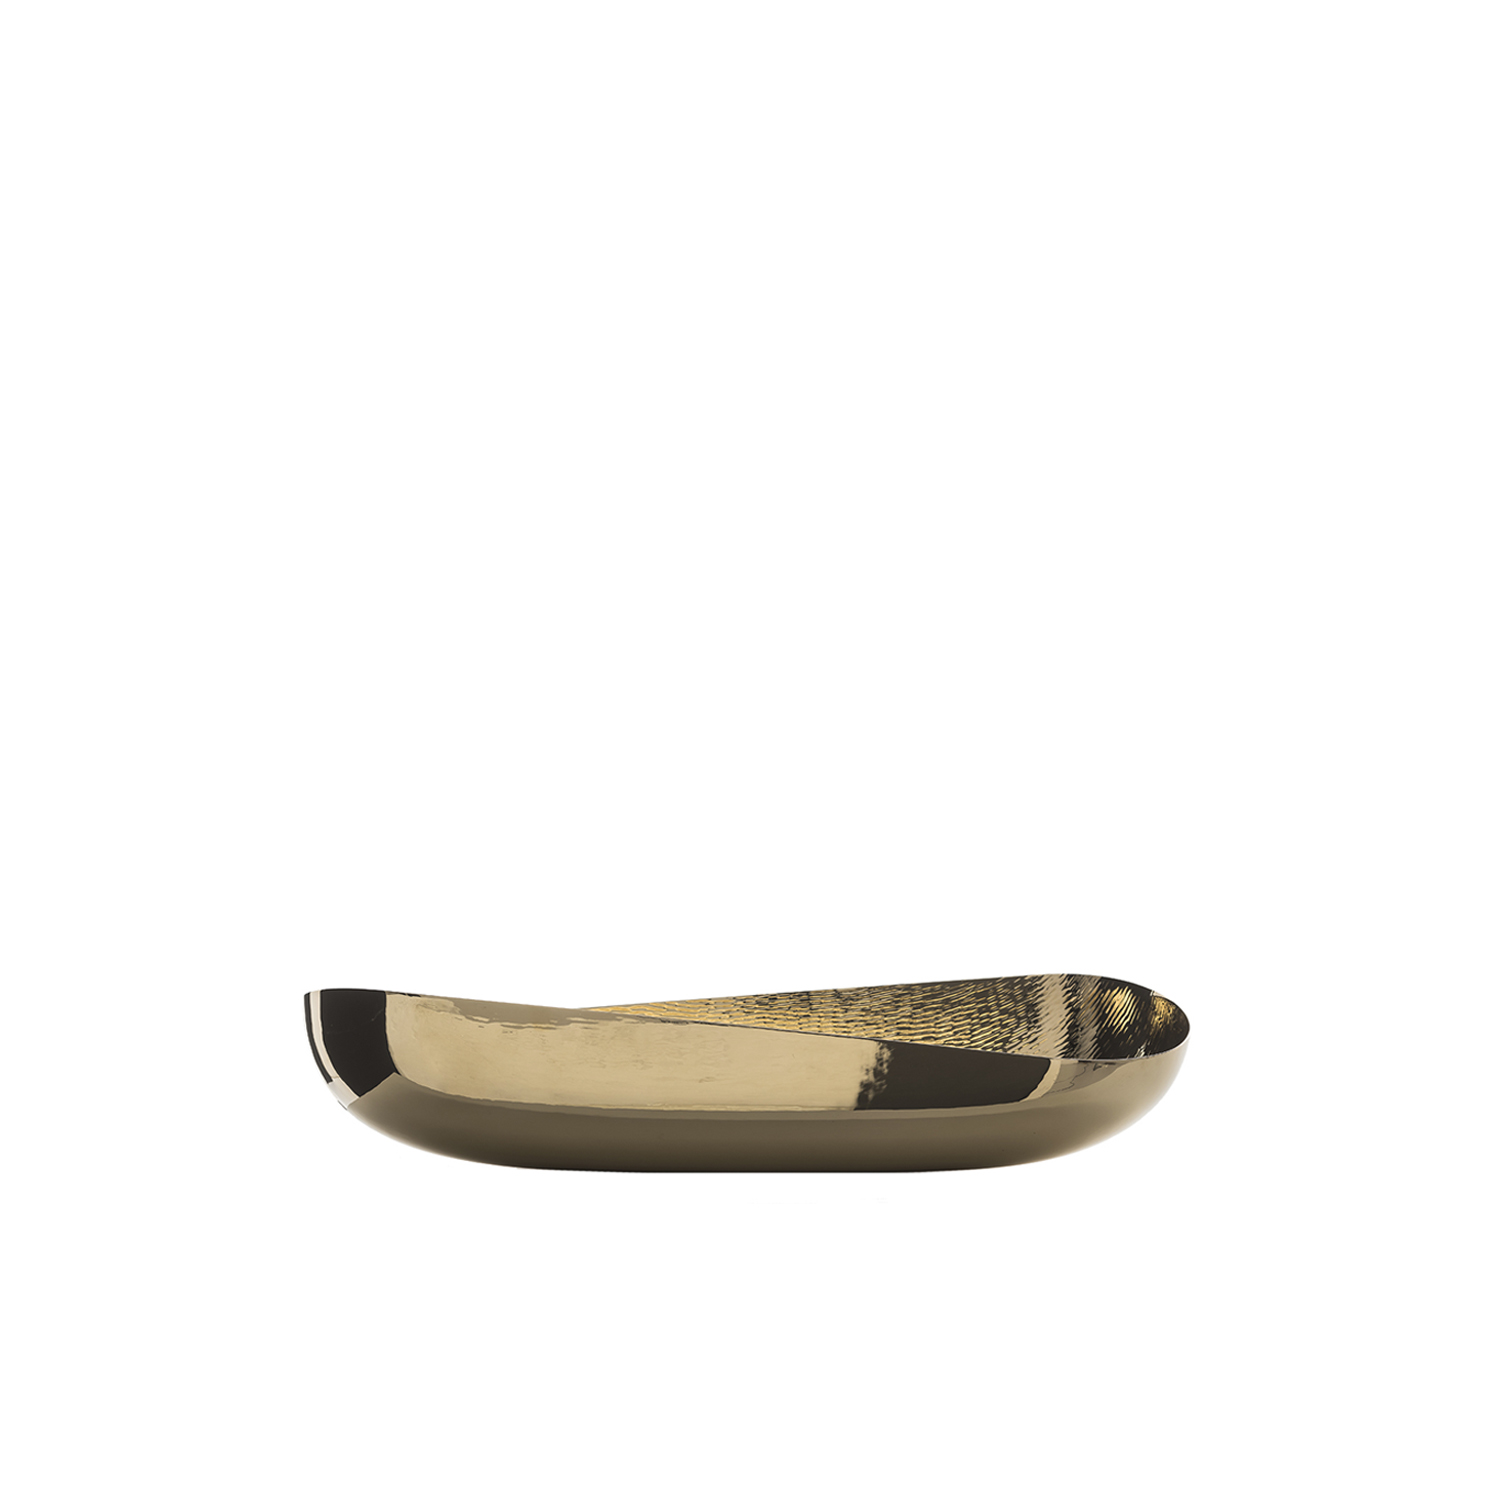 Illusioni Bowl - The organic look and feel of this bowl make it a special piece to display in any room in the house to make a sophisticated and elegant statement. Made entirely of brass with a beeswax coating, its elongated, sinuous shape and its generous size give this object of functional decor a versatile quality. Its smooth exterior surface strikingly contrasts with the lightly textured interior for a modern final effect.  | Matter of Stuff